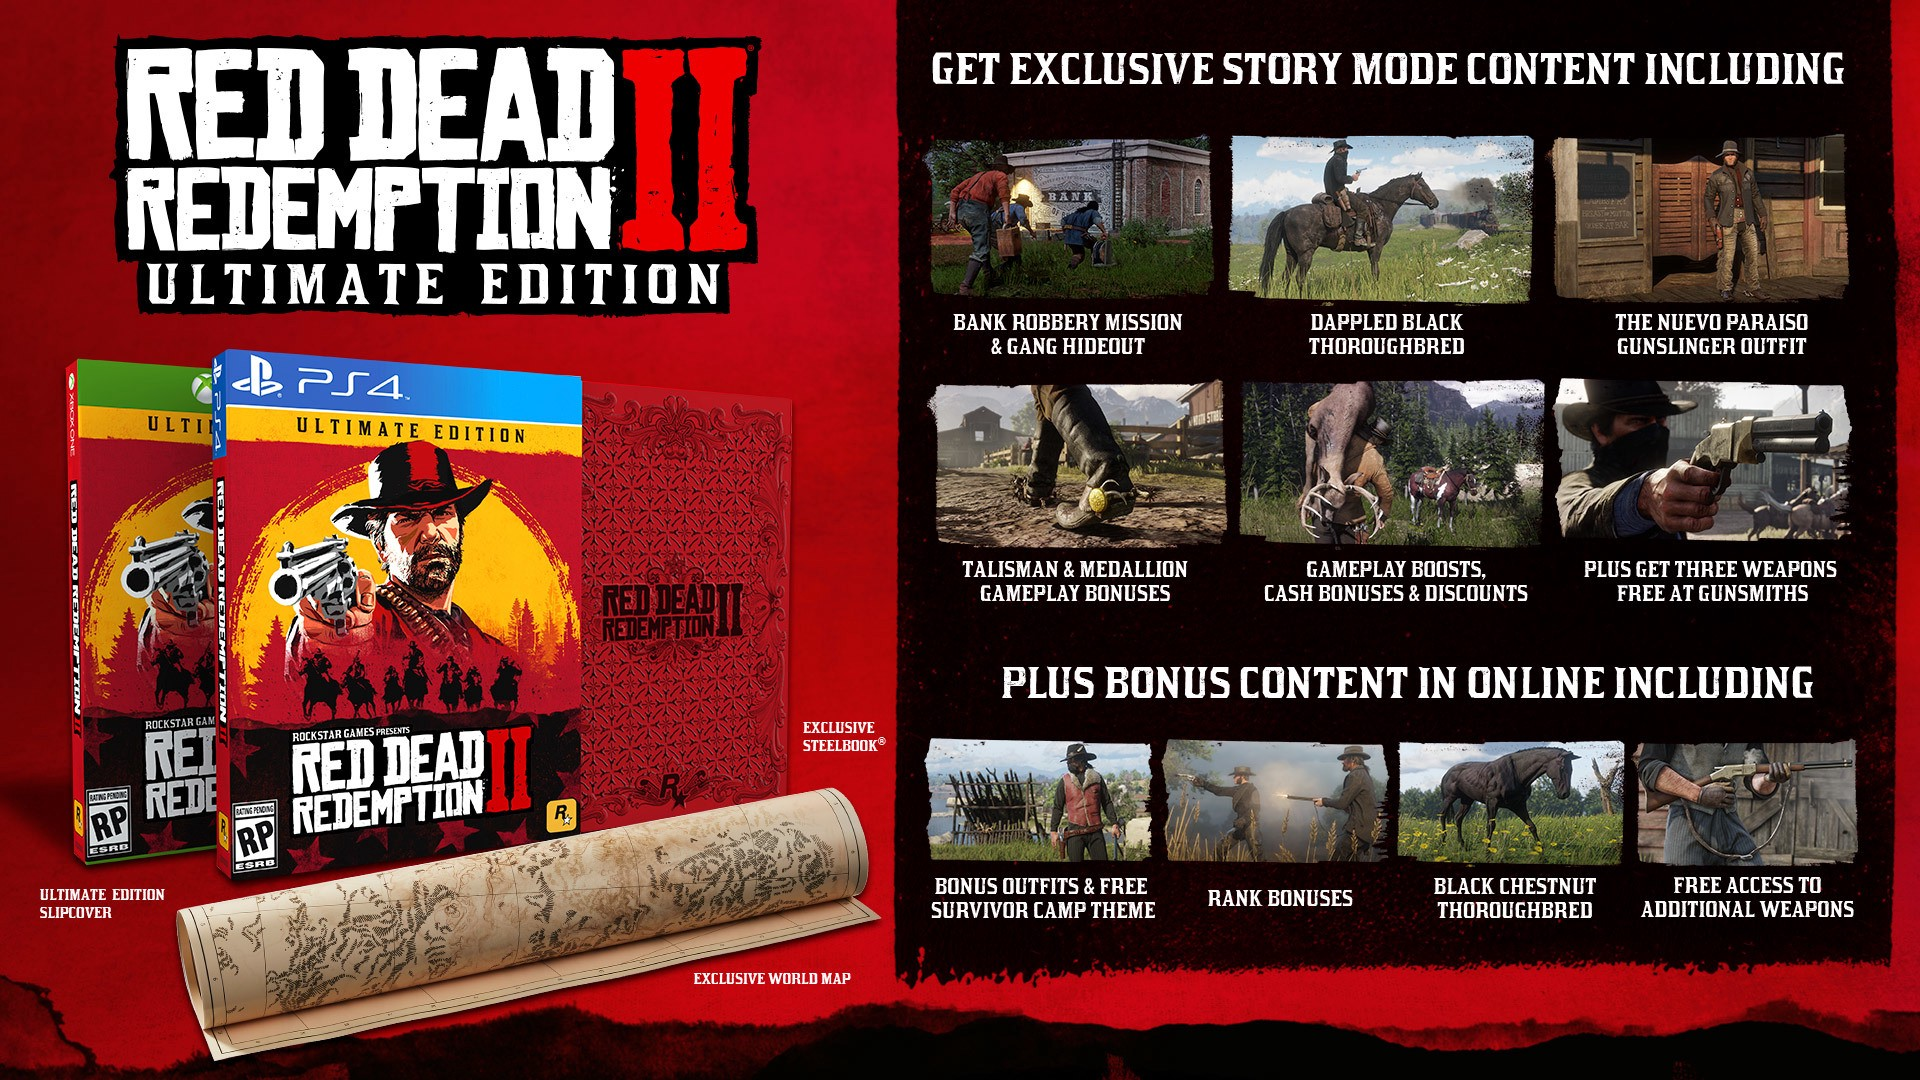 Red Dead Redemption 2's Pre-order Bonuses are Anti-consumer